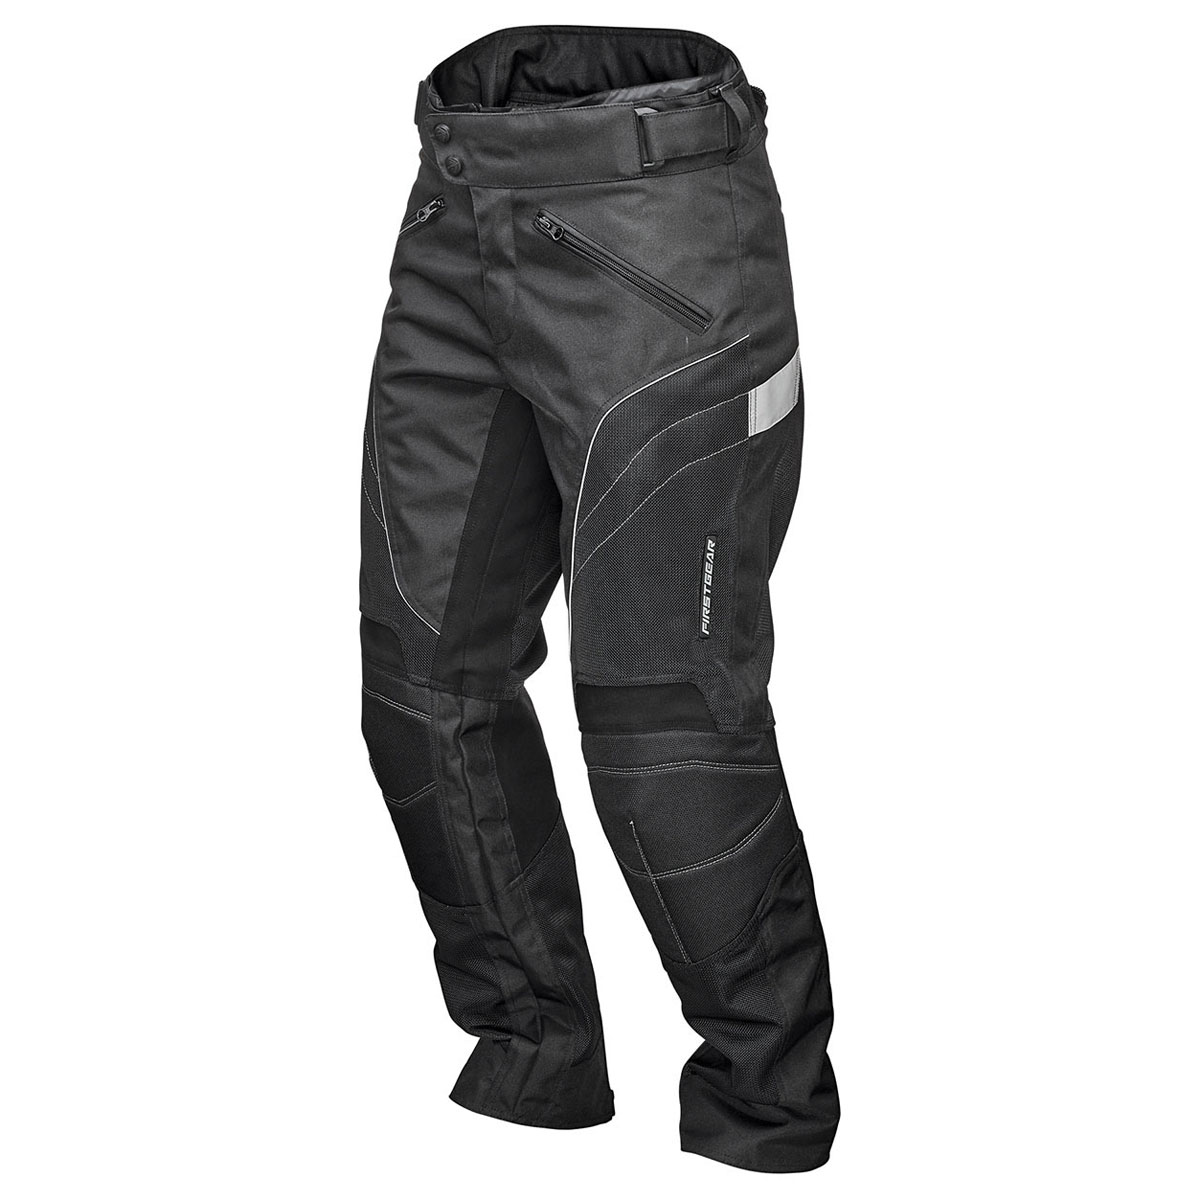 Firstgear Women's Contour Air Mesh Black Pants